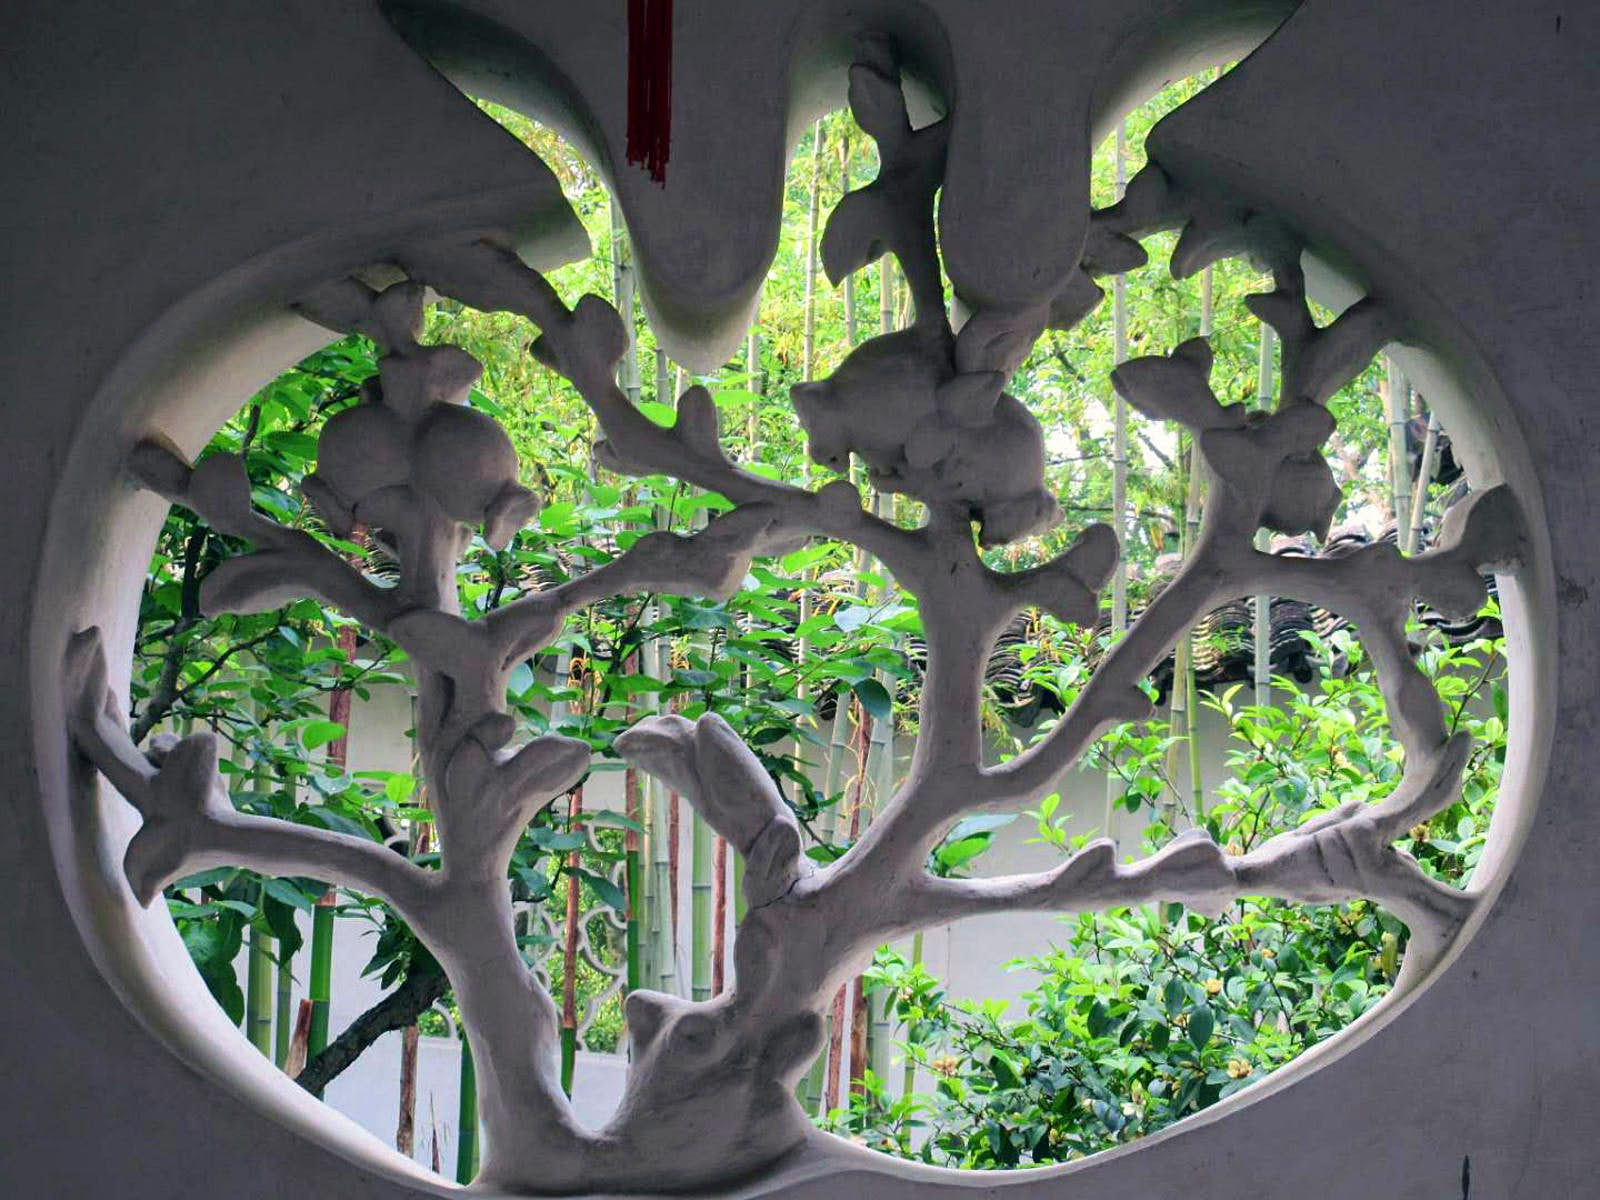 A white-washed window with delicate grating shaped like a tree looks out onto trees in the garden. Suzhou's classical gardens have details like this window that create picturesque scenes as you wander through © Tess Humphrys / Lonely Planet